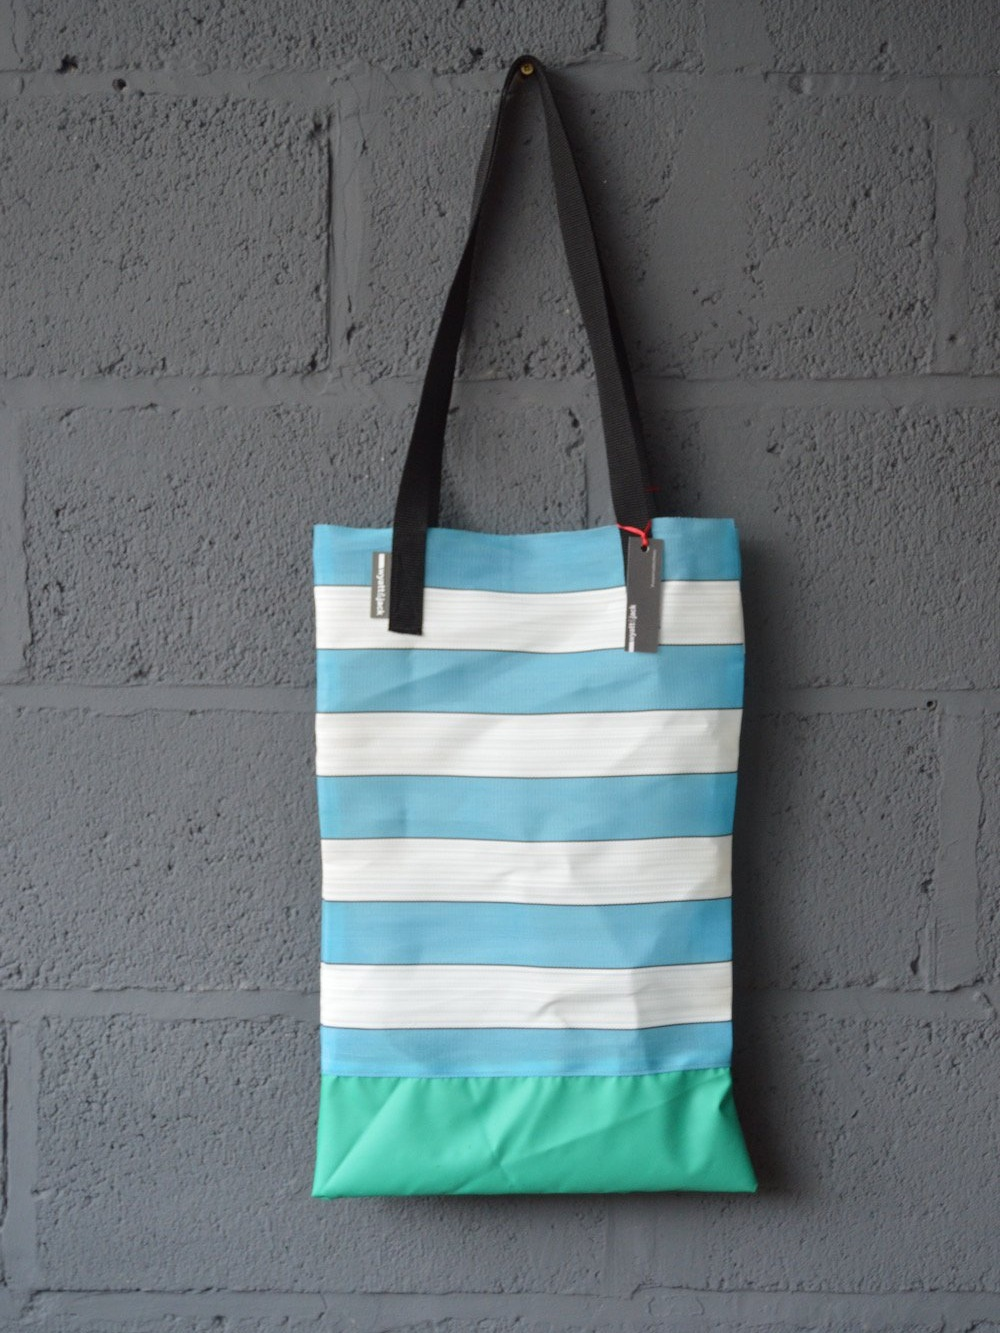 Deckchair Tote - Our deckchair totes have a naturally long line to them, cut to the original width of the chair fabric for less wasteDimensions: W 310mm x H: 500-550mm